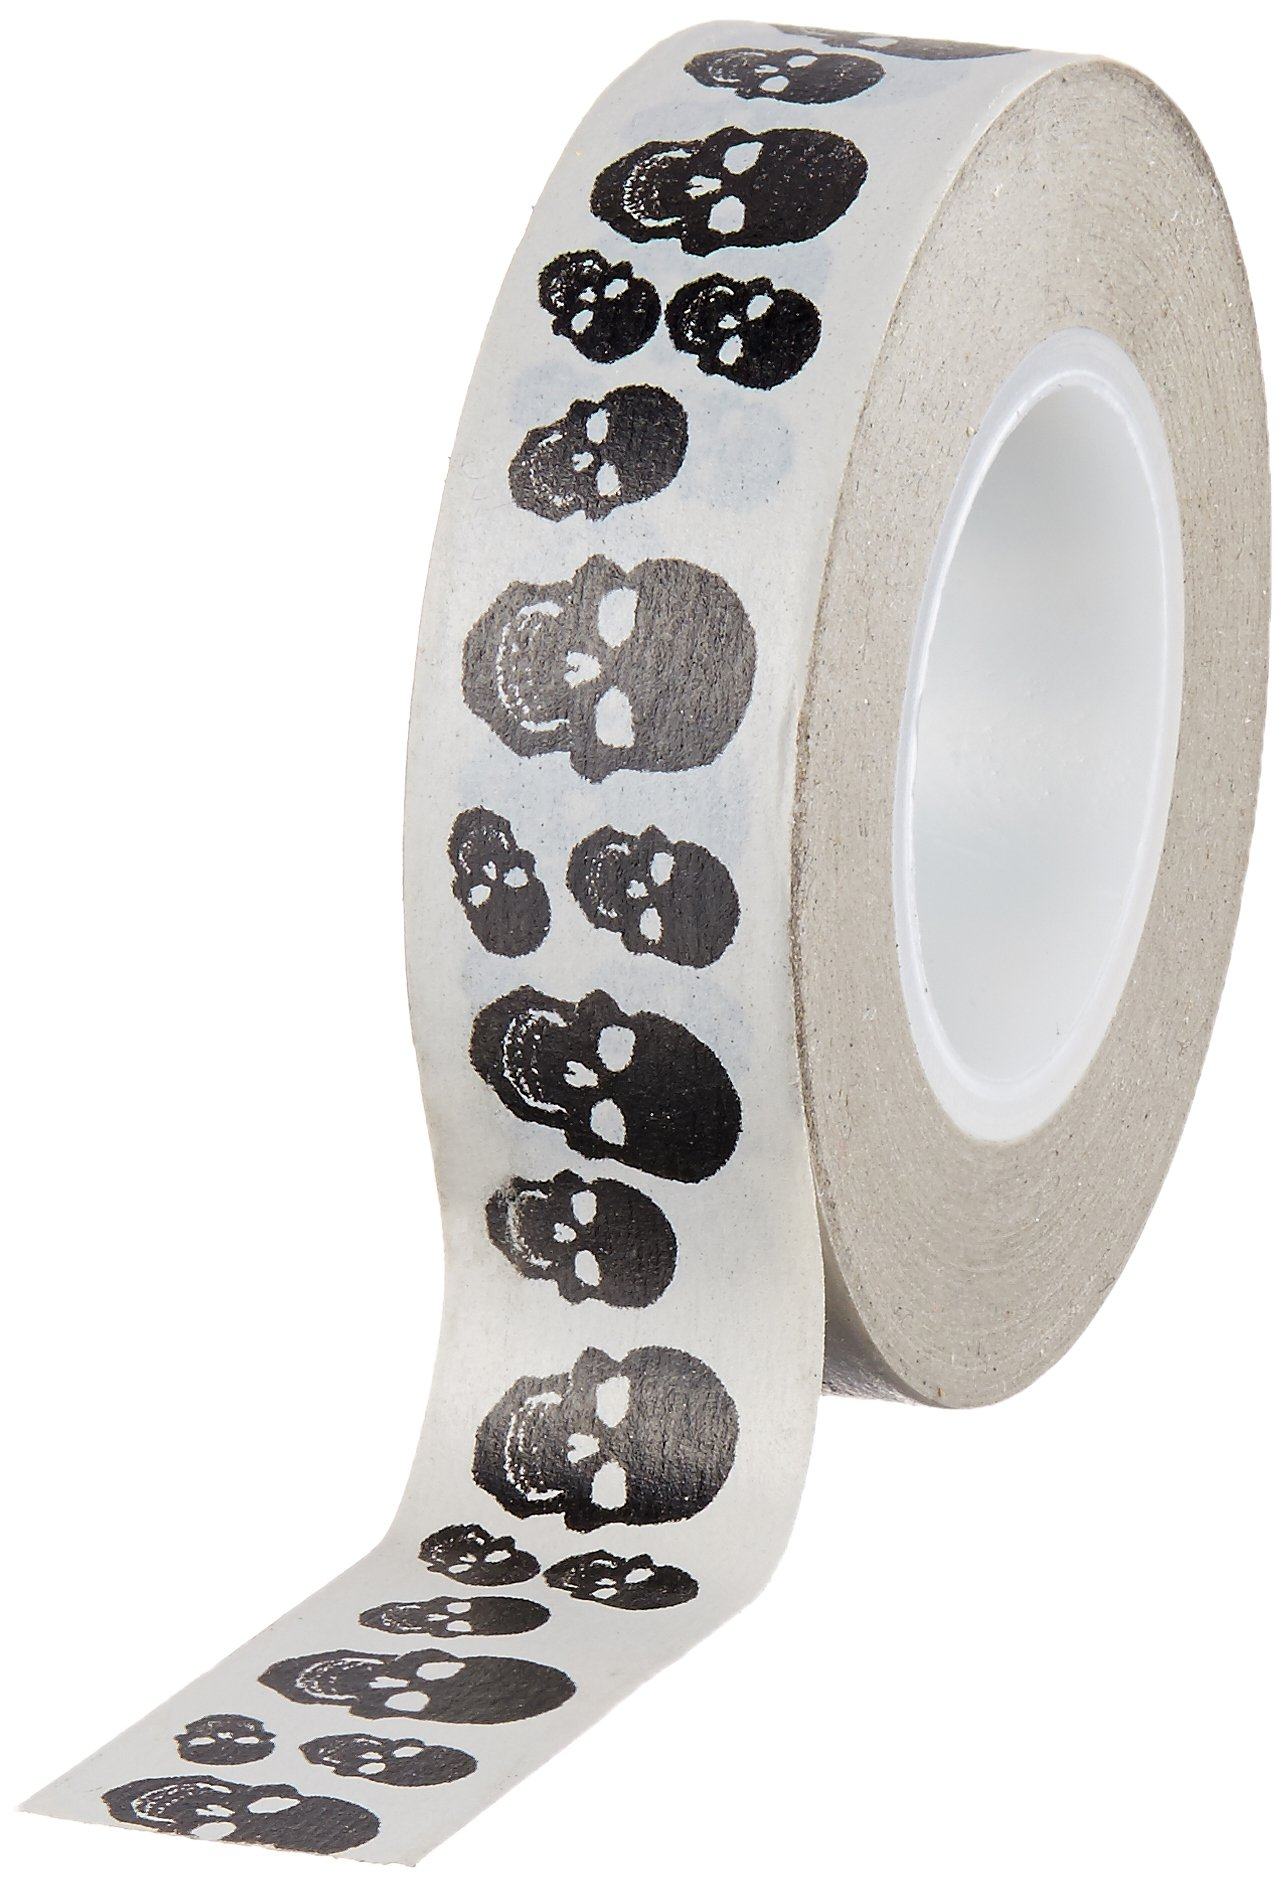 Tape Works Tape, Black and White Skulls